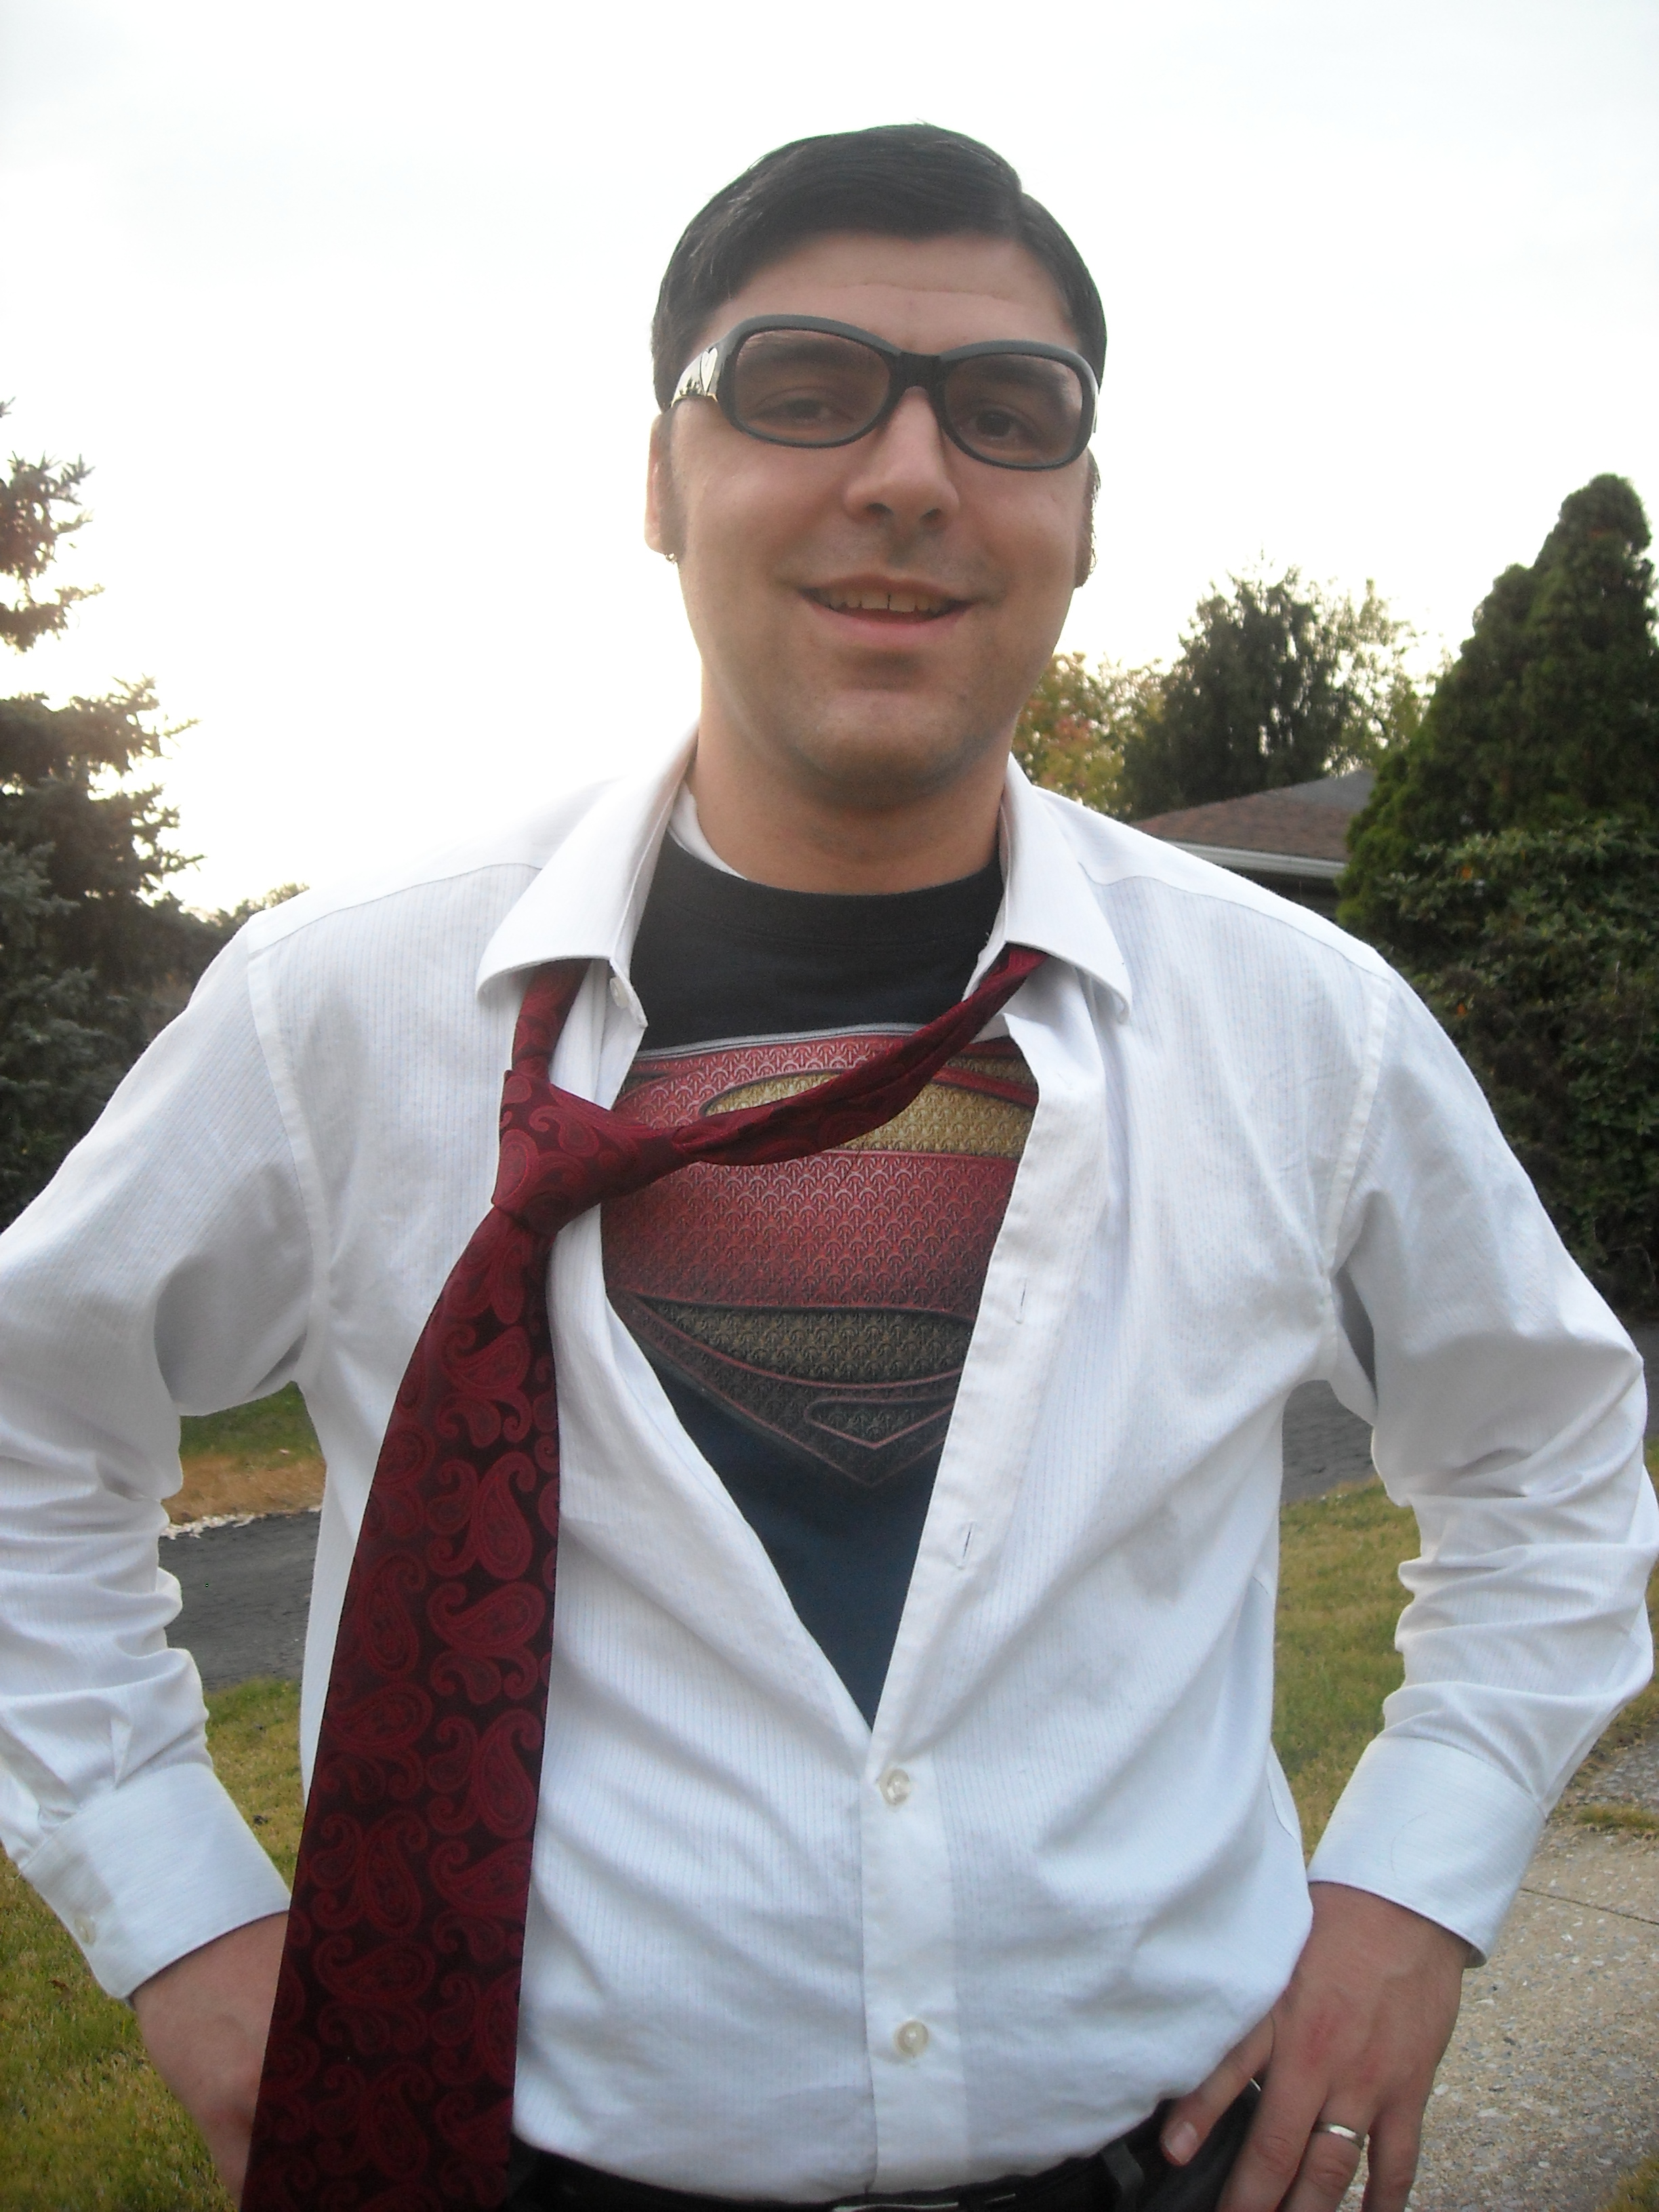 diy easy halloween costume ideas for men - mommysavers